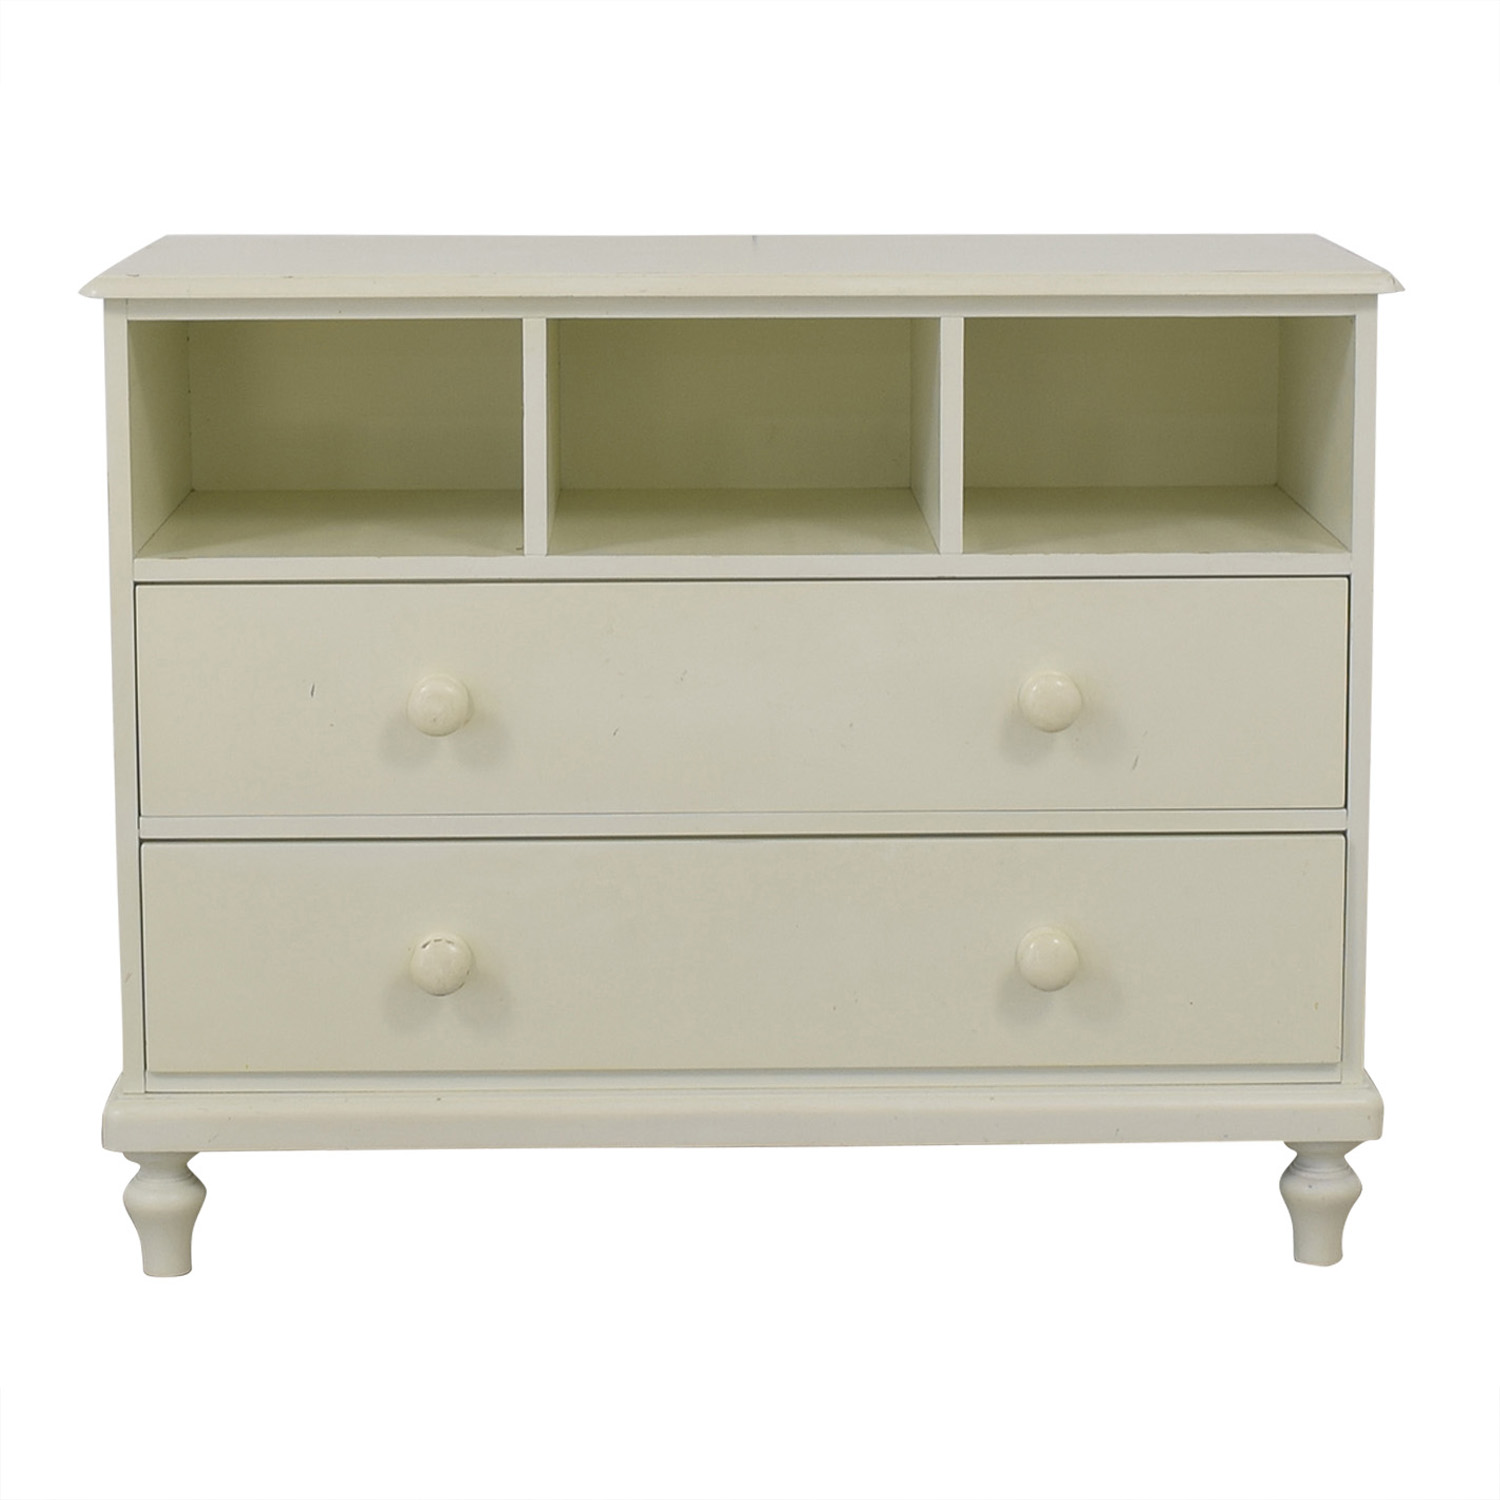 shop Pottery Barn Antique White Berkeley Two-Drawer Dresser Pottery Barn Storage